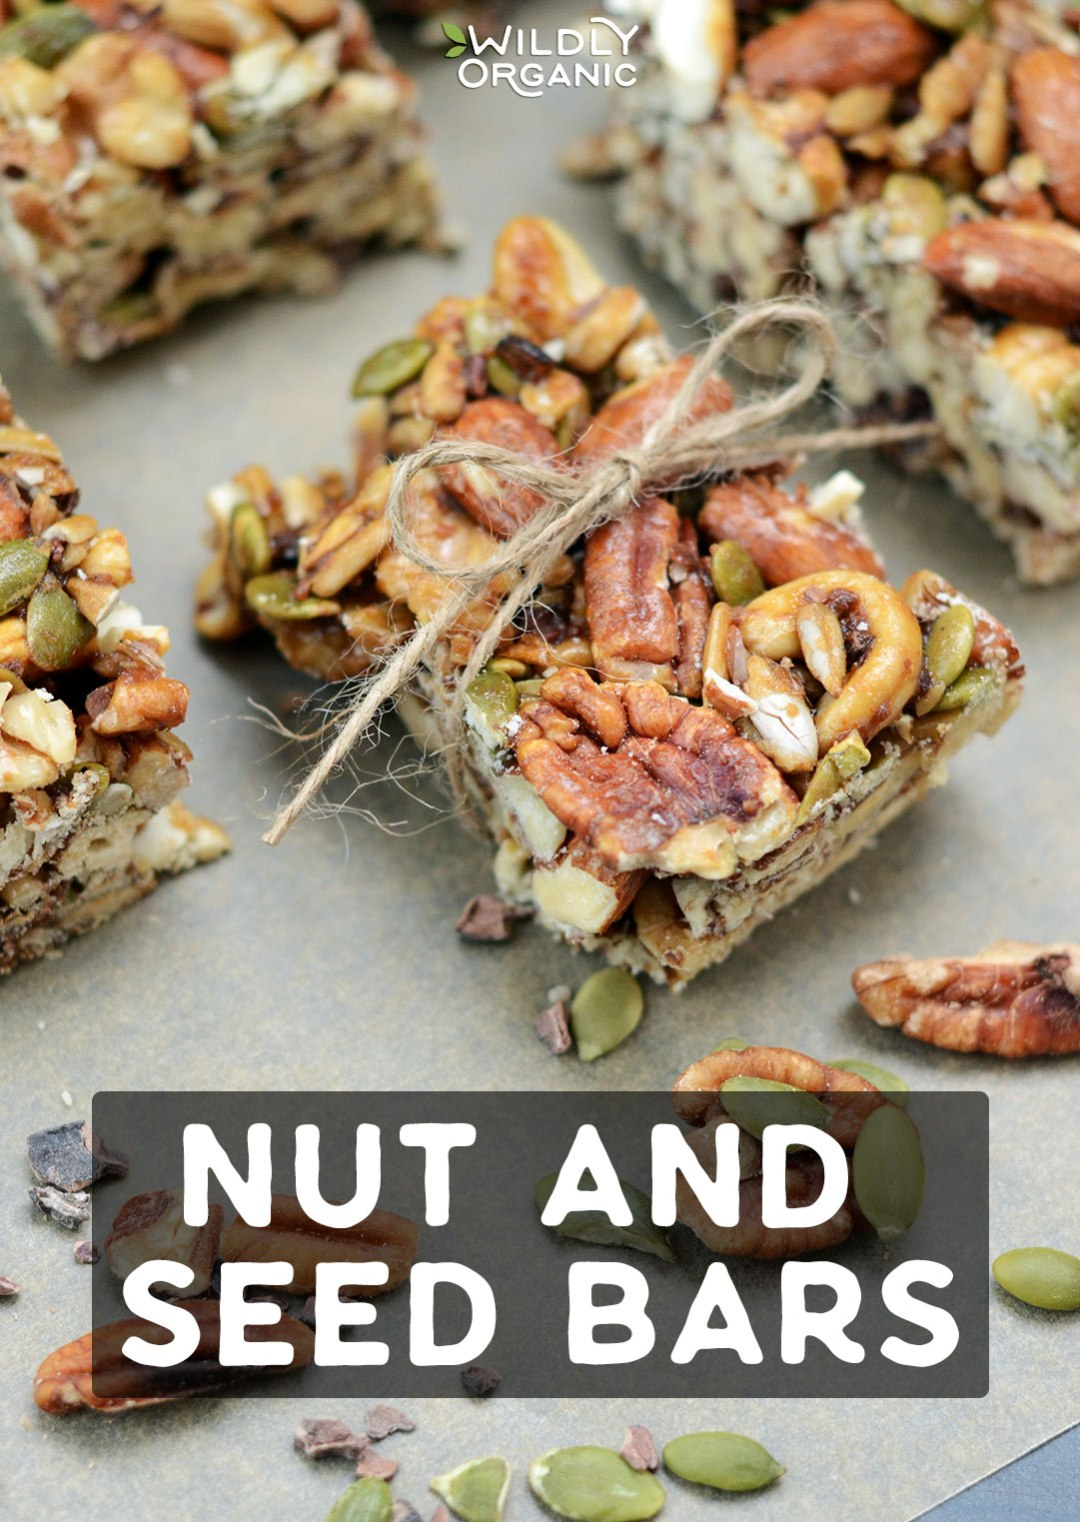 Homemade nut and seed bars are a nutrient dense, portable snack that will satisfy hunger and provide long-lasting energy. They pack a ton of flavor and are full of nutritious nuts and seeds that provide healthy fats and antioxidants!